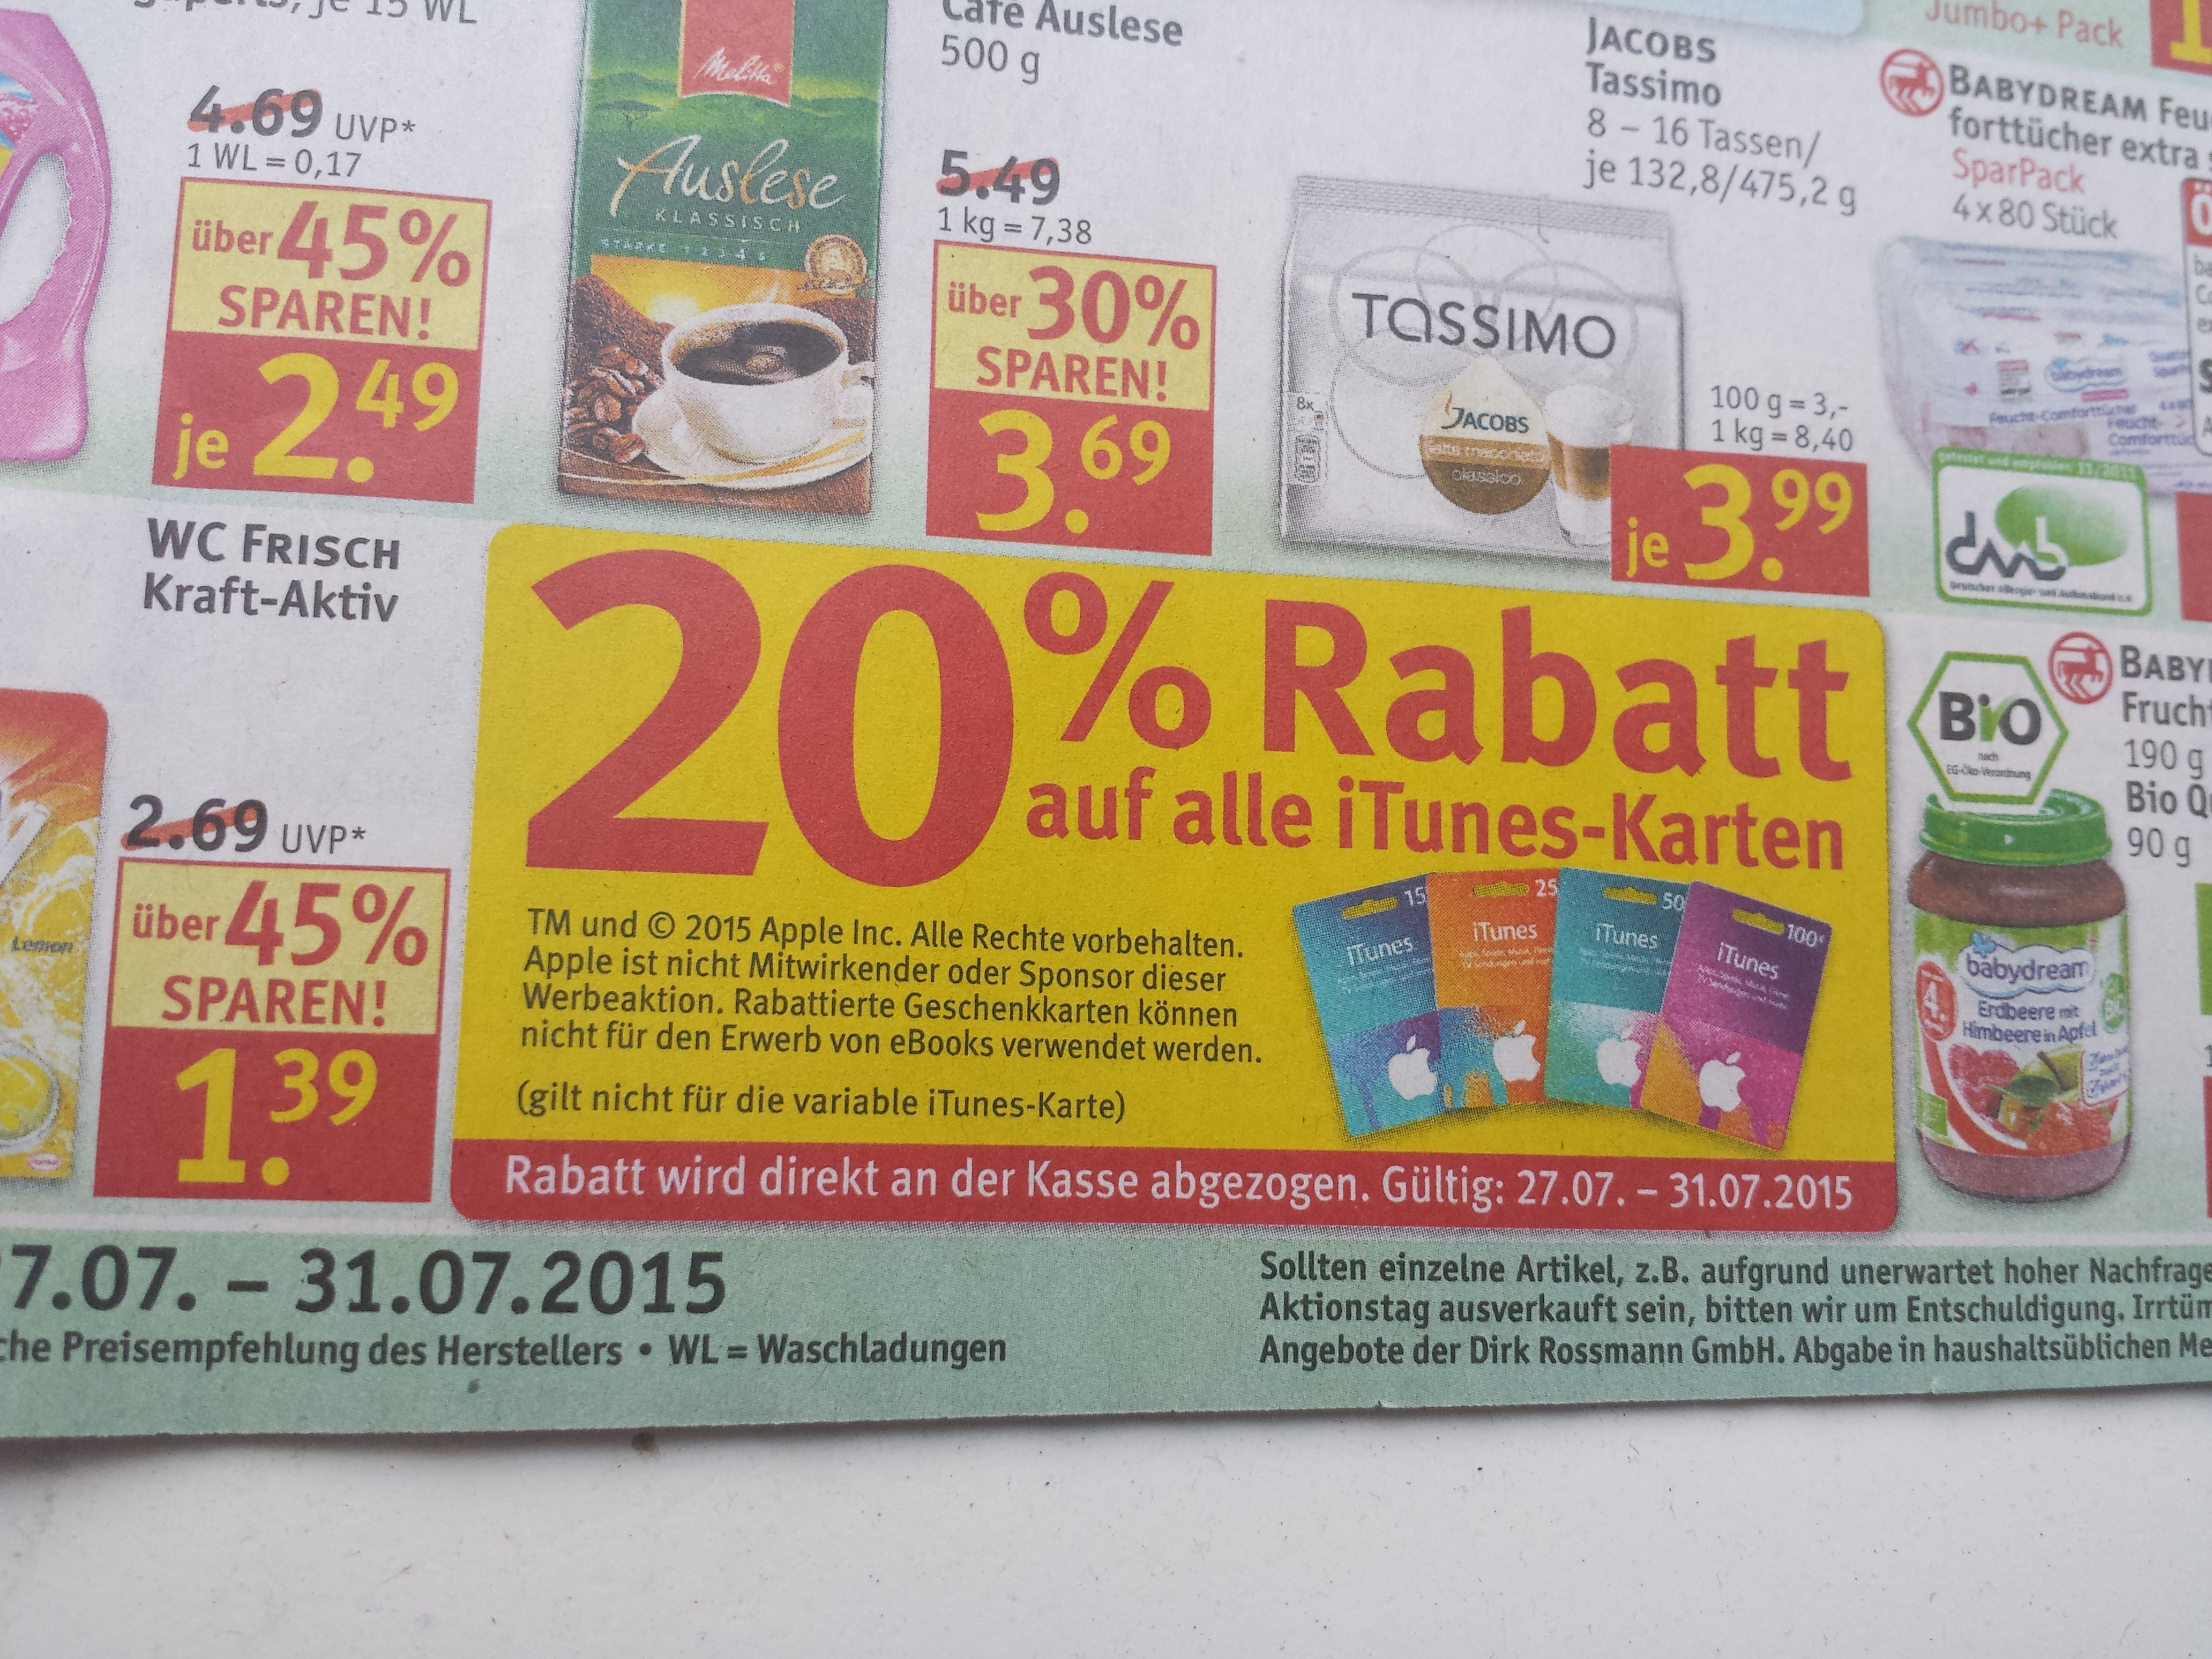 rossmann 20 rabatt auf itunes karten 15 f r 12 25 f r 20 50 f r 40 und 100 f r 80. Black Bedroom Furniture Sets. Home Design Ideas